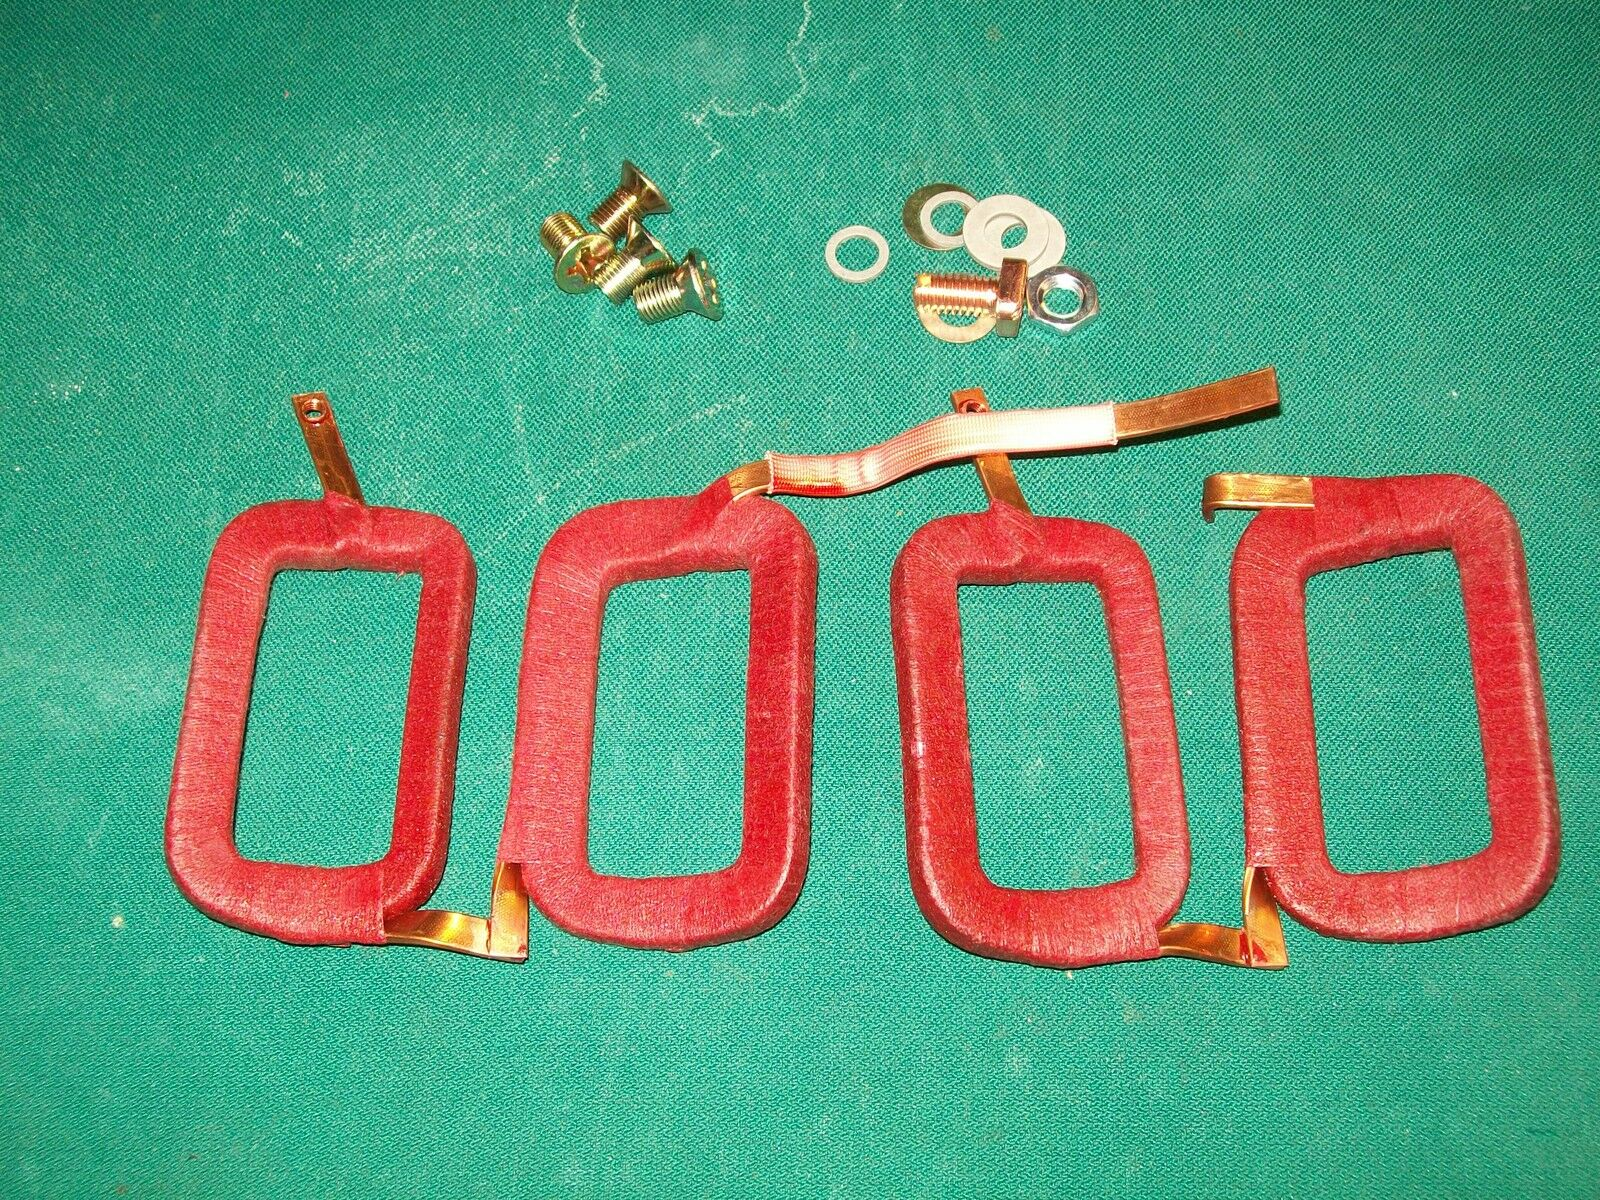 DELCO STARTER FIELD Coil set Allis Chalmers WD WD45 6 Volt Contact ...